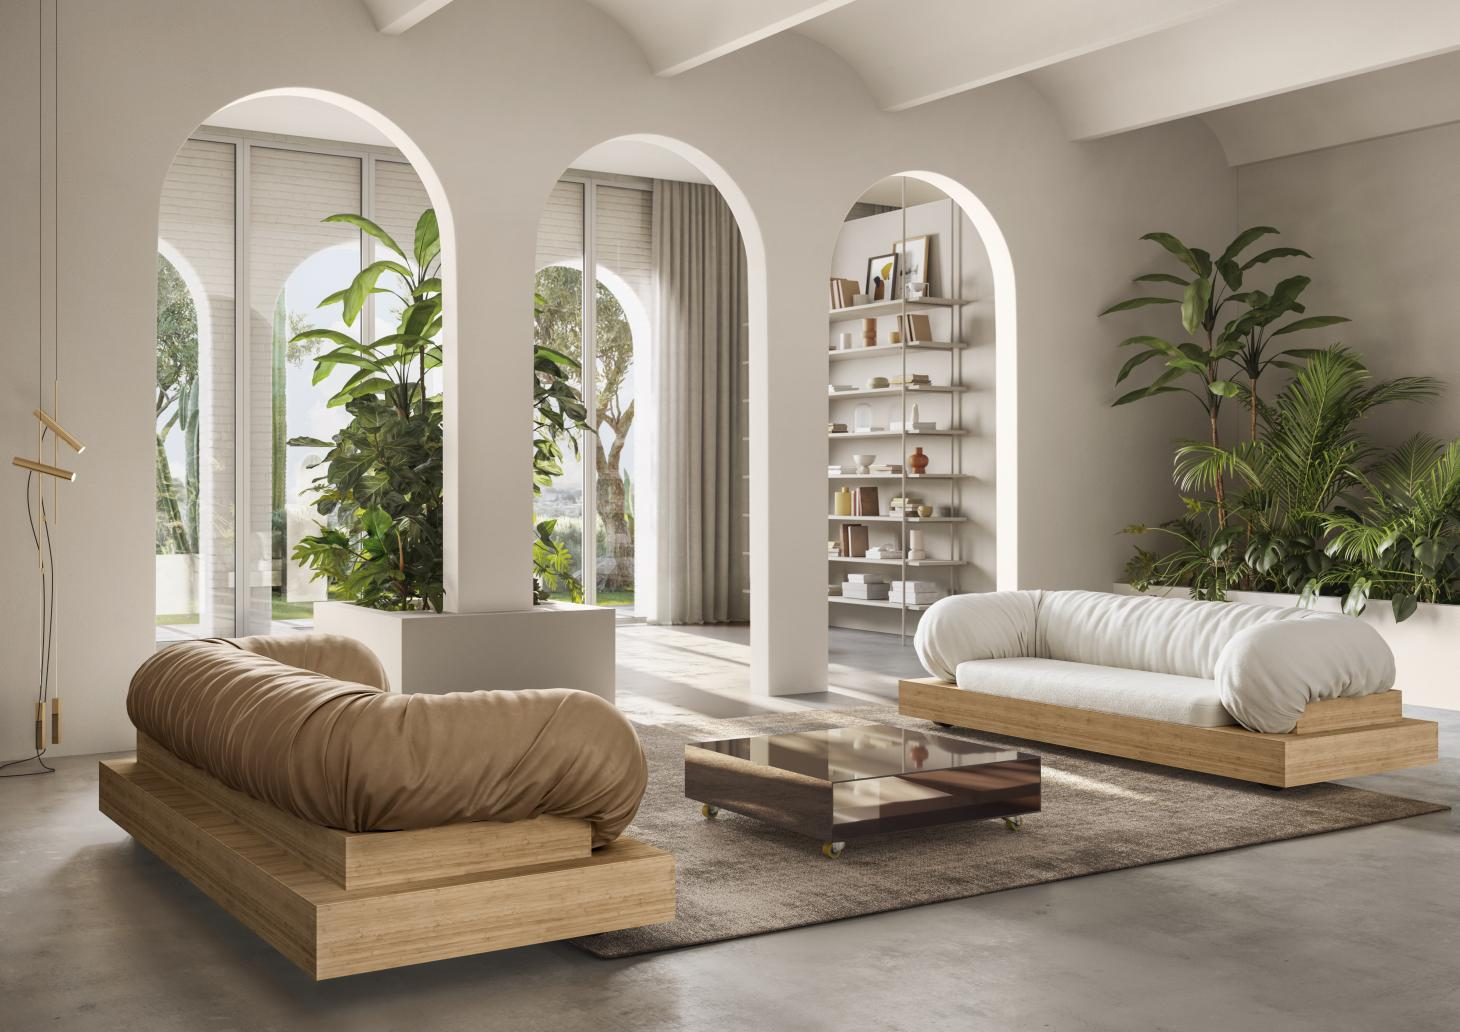 Sabine Marcelis sofas for Natuzzi with wheeled wooden bases and leather seats and back in white and brown